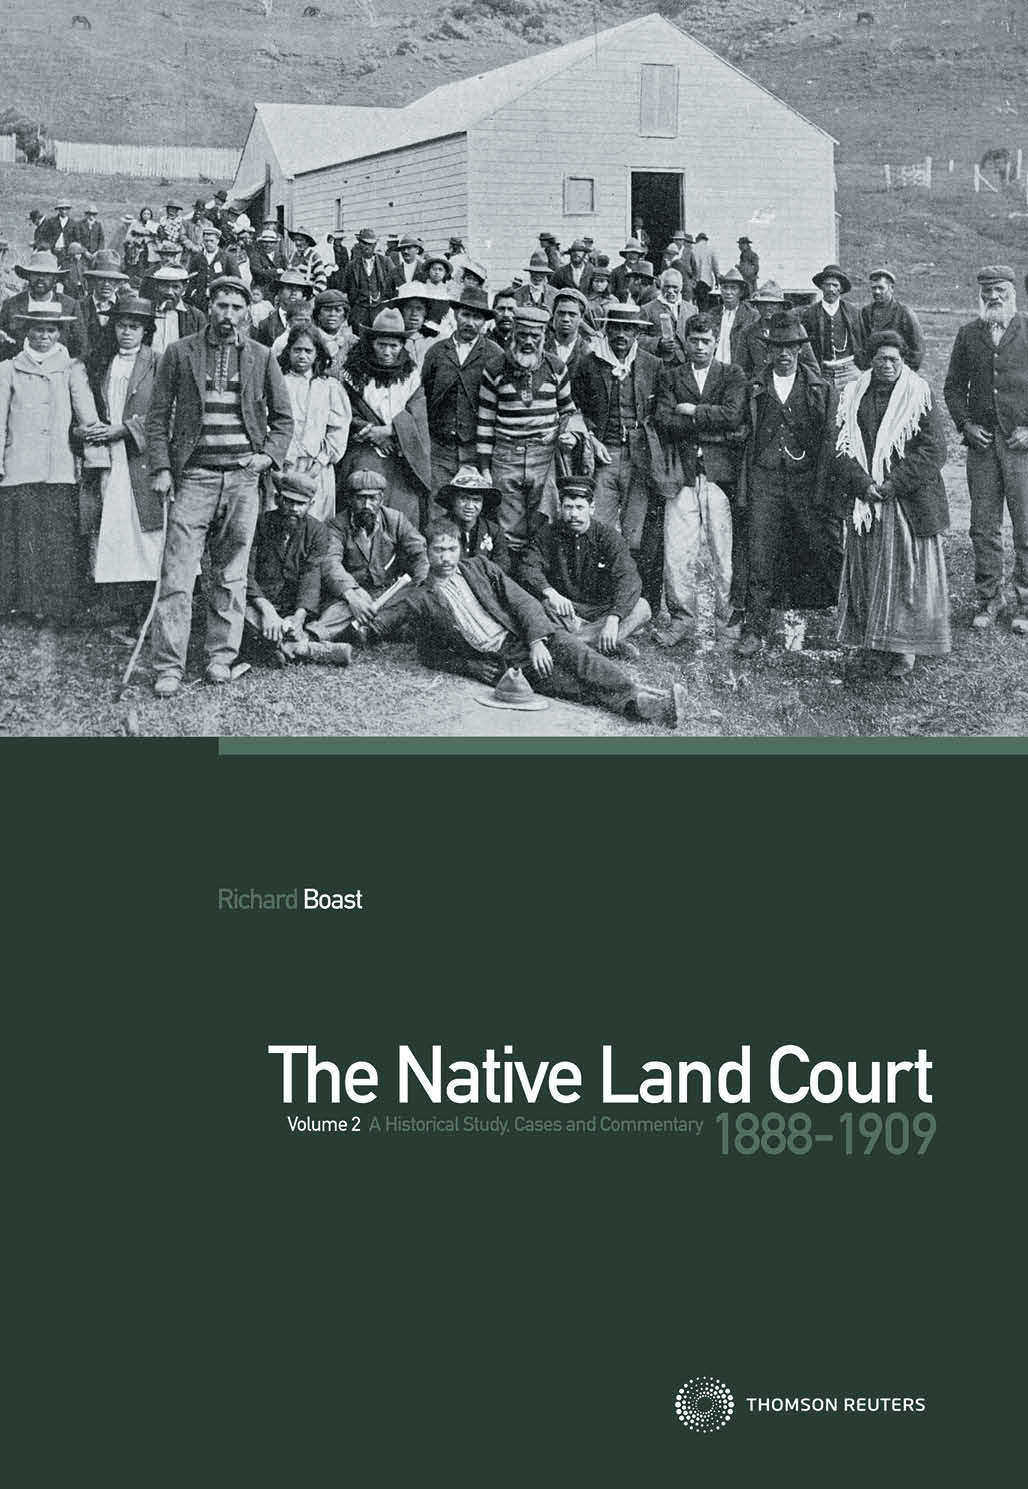 The Native Land Court Volume 2 1888-1909: A Historical Study, Cases and Commentary (Book)